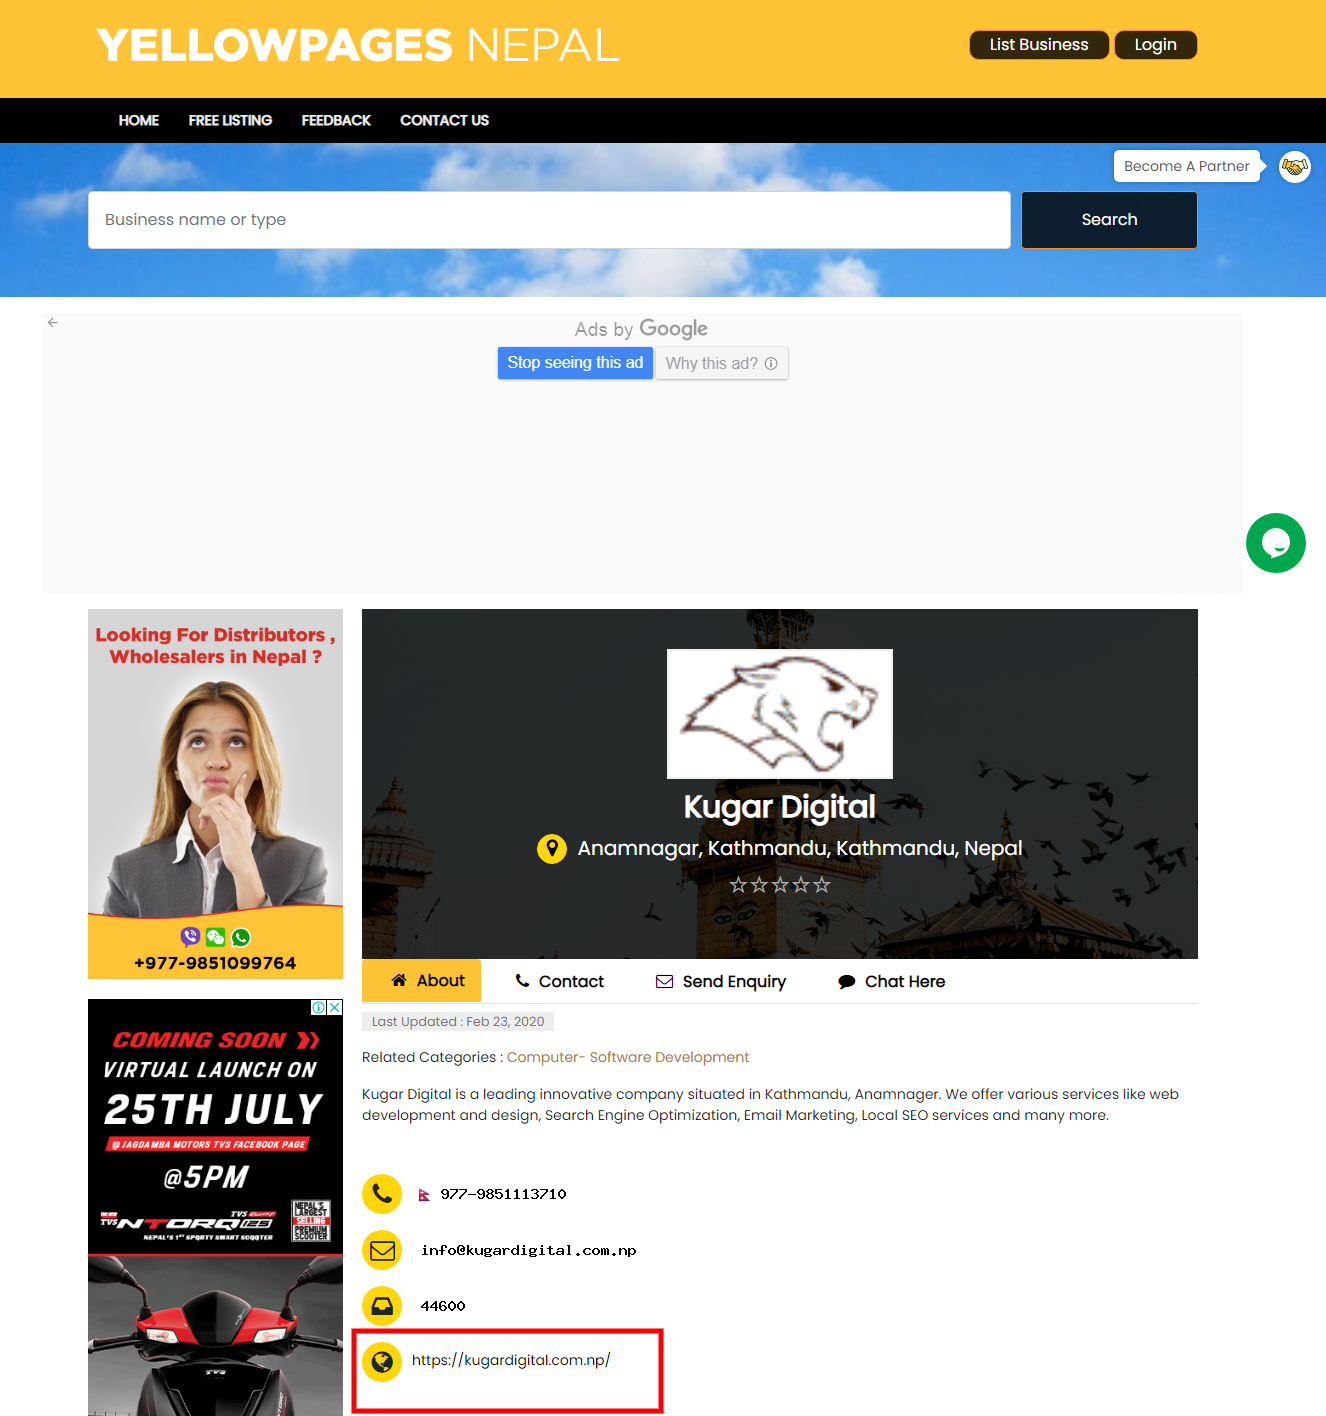 Kugar Digital on Yellow Pages Nepal Business  Directory Listing Site